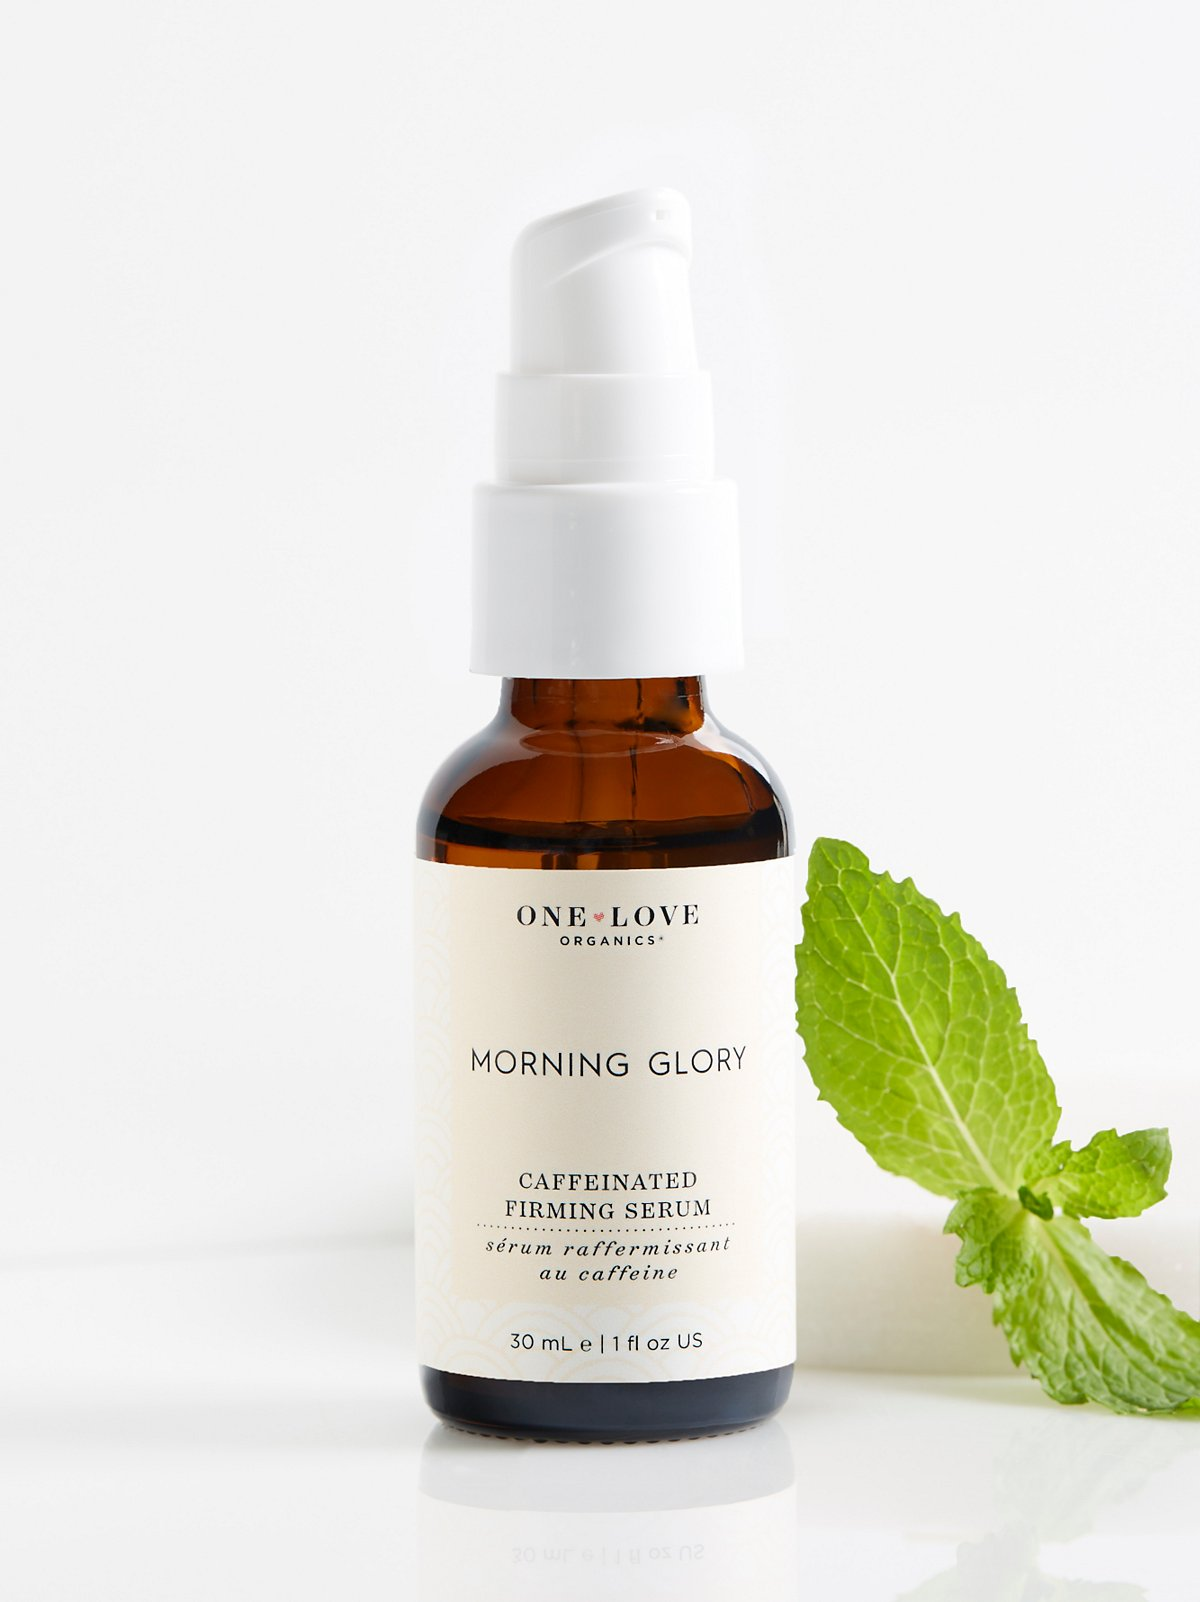 Morning Glory Caffeinated Firming Serum